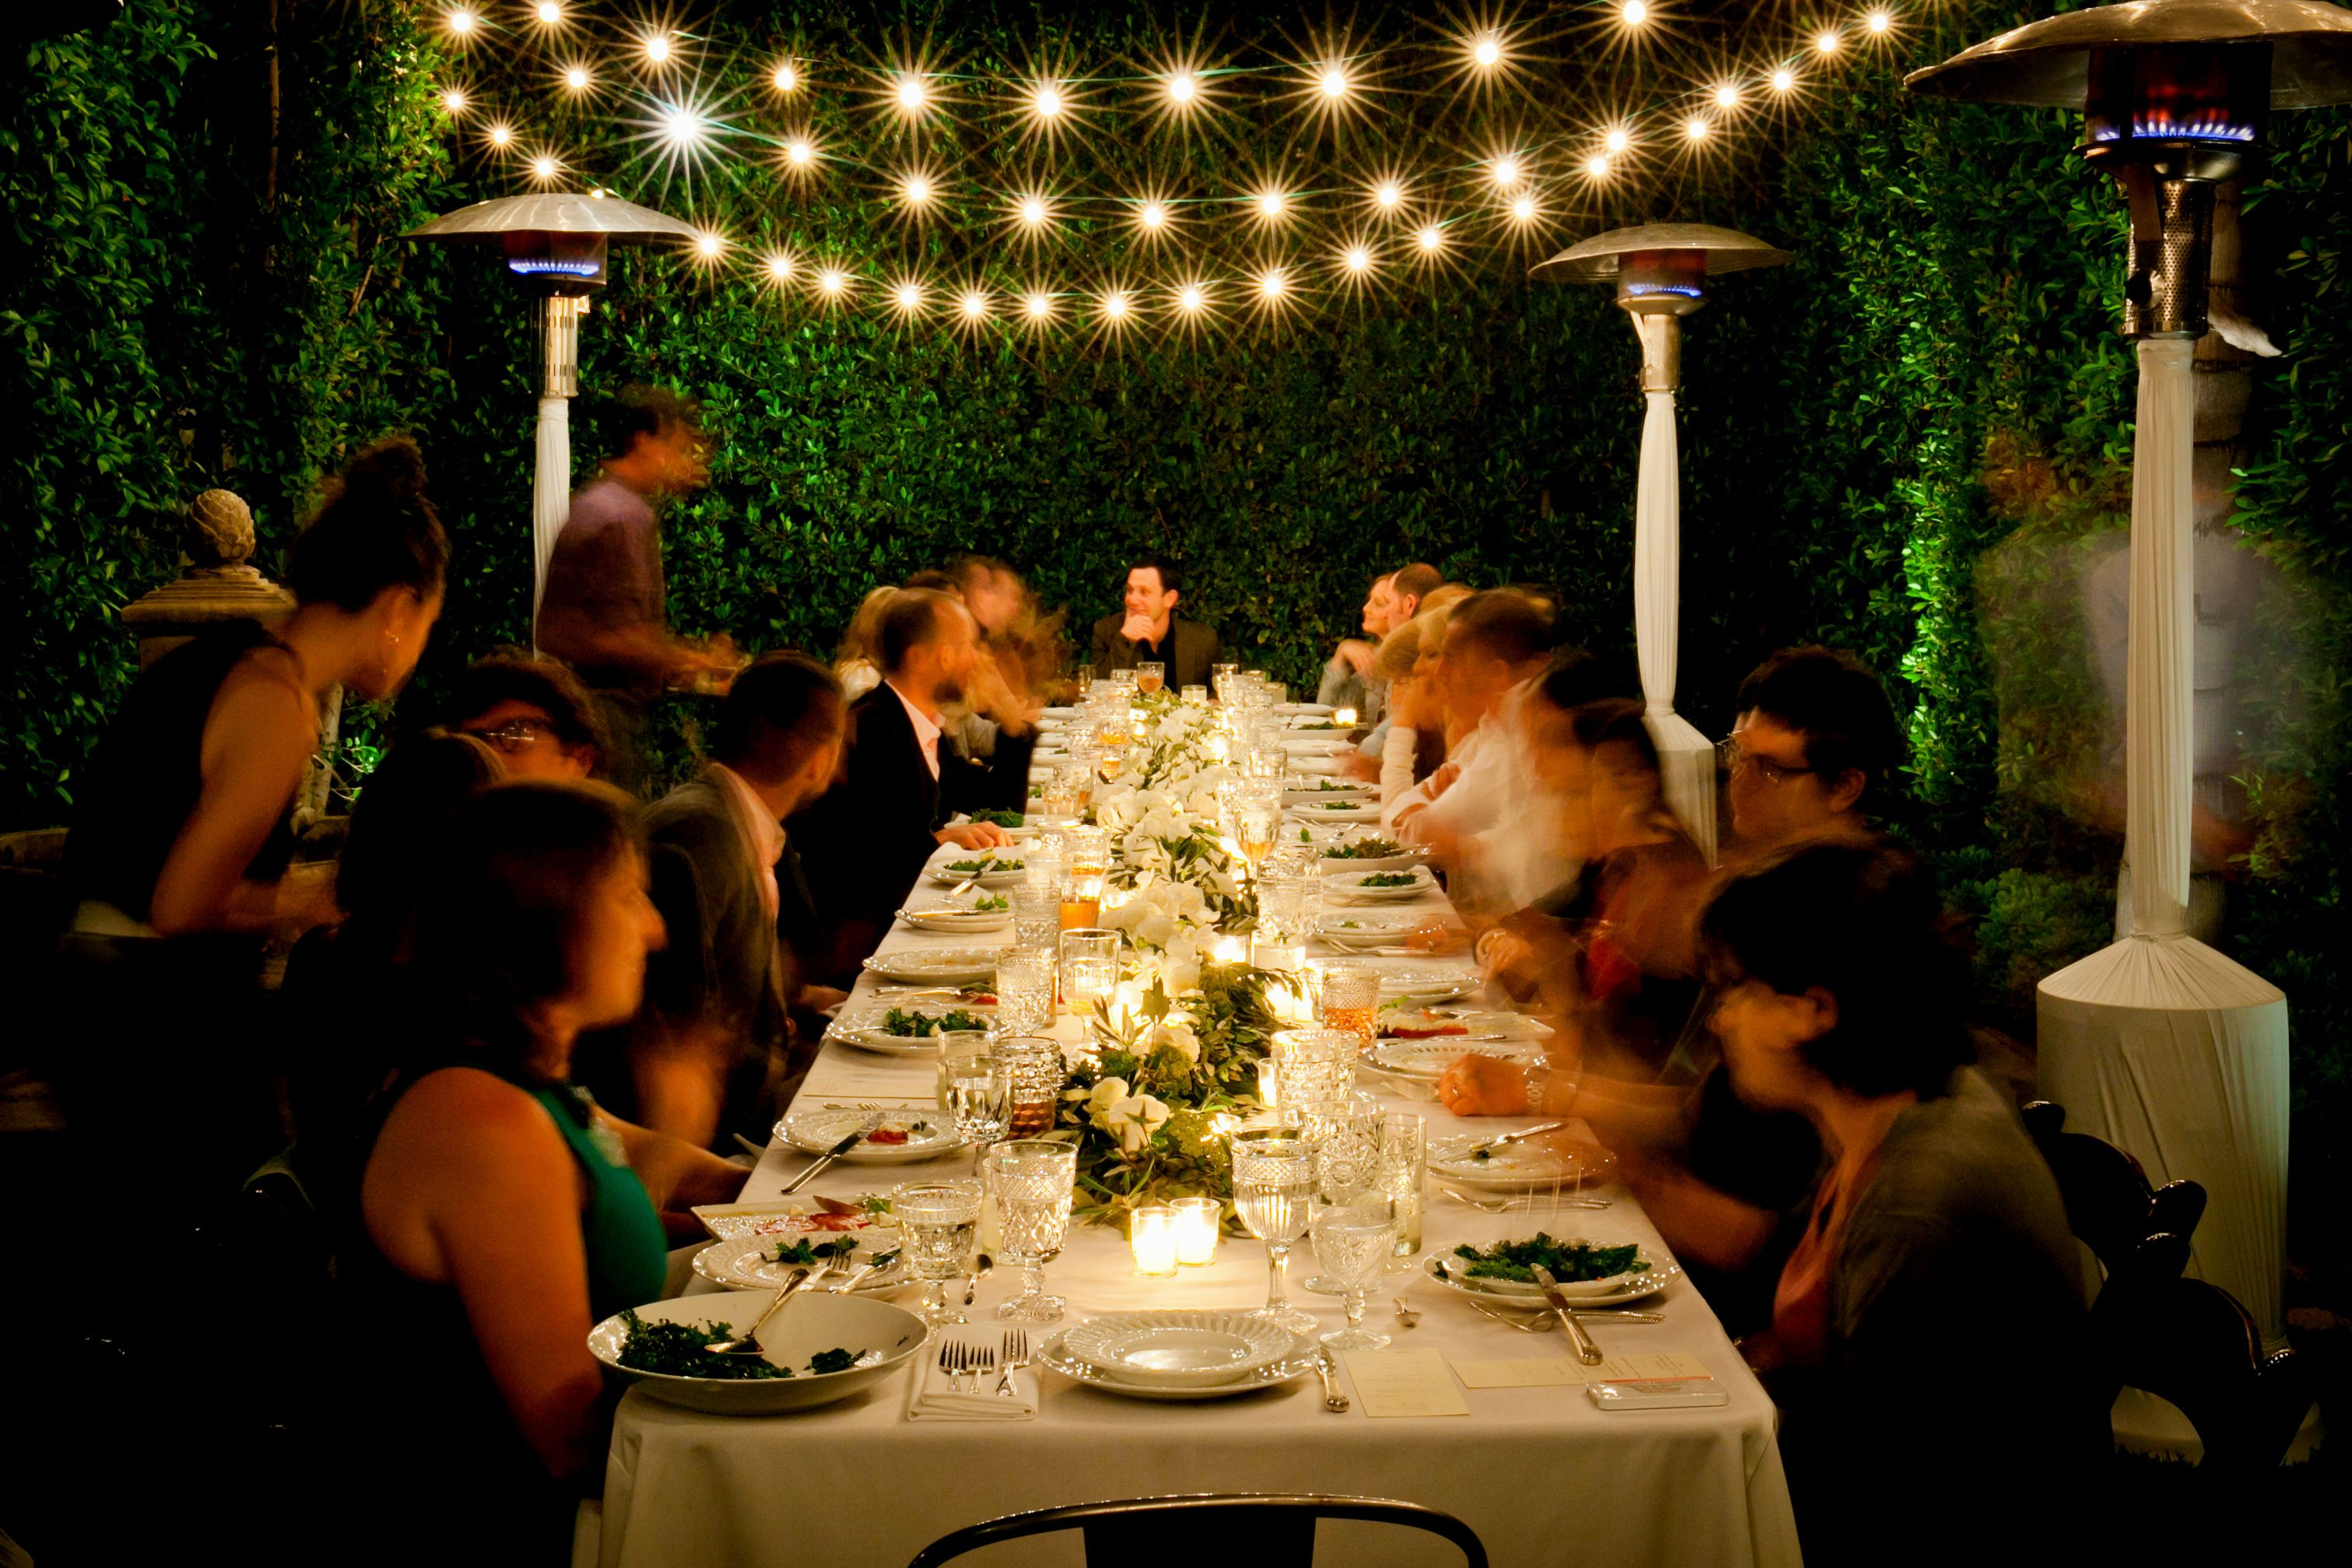 Superior Ideas For Birthday Dinner Party Part - 6: A Great Summer Evening Dinner Party Idea!